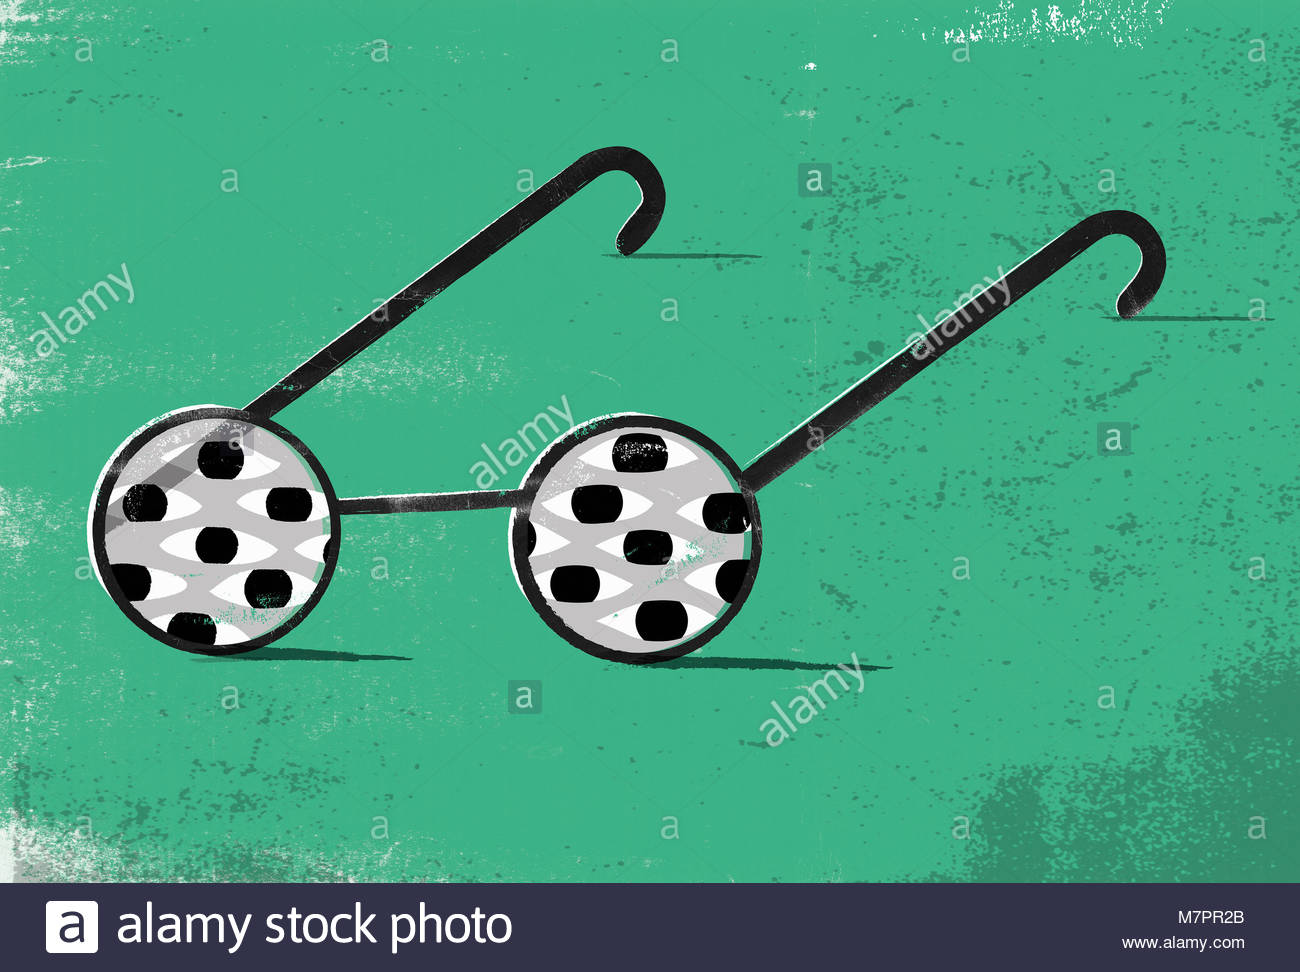 Lots of eyes in lenses of pair of glasses - Stock Image